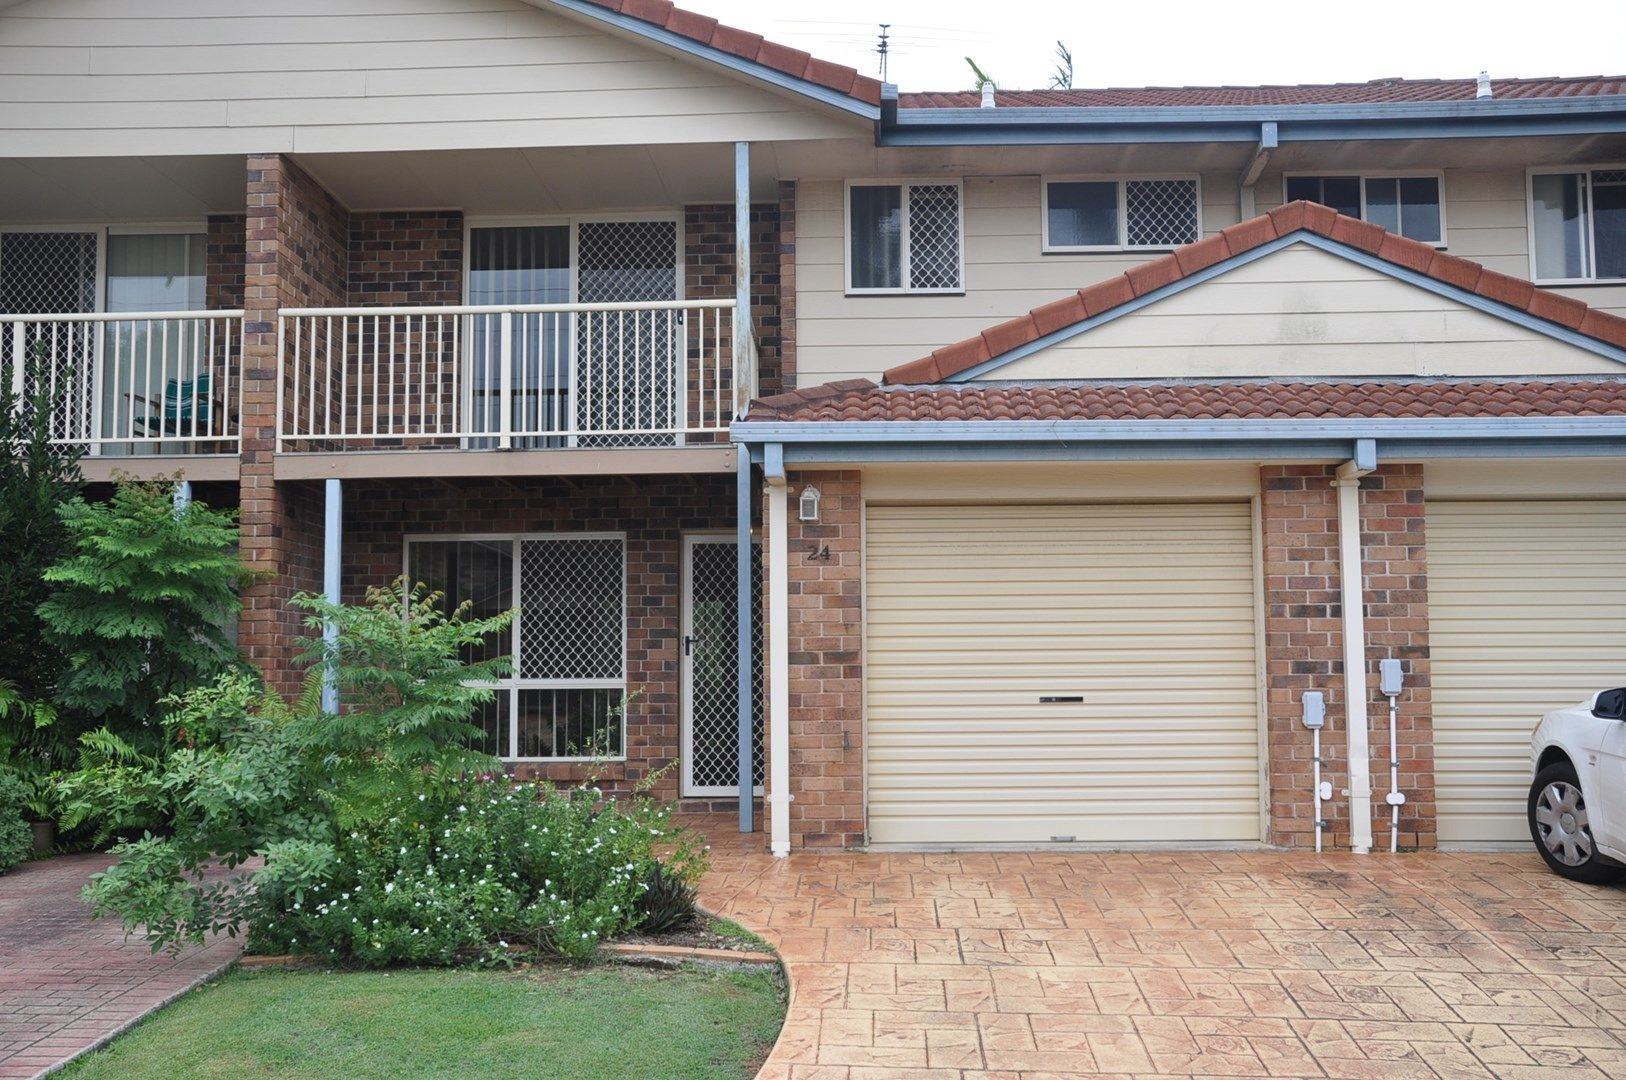 12/24 Grandchester, Sunnybank Hills QLD 4109, Image 0